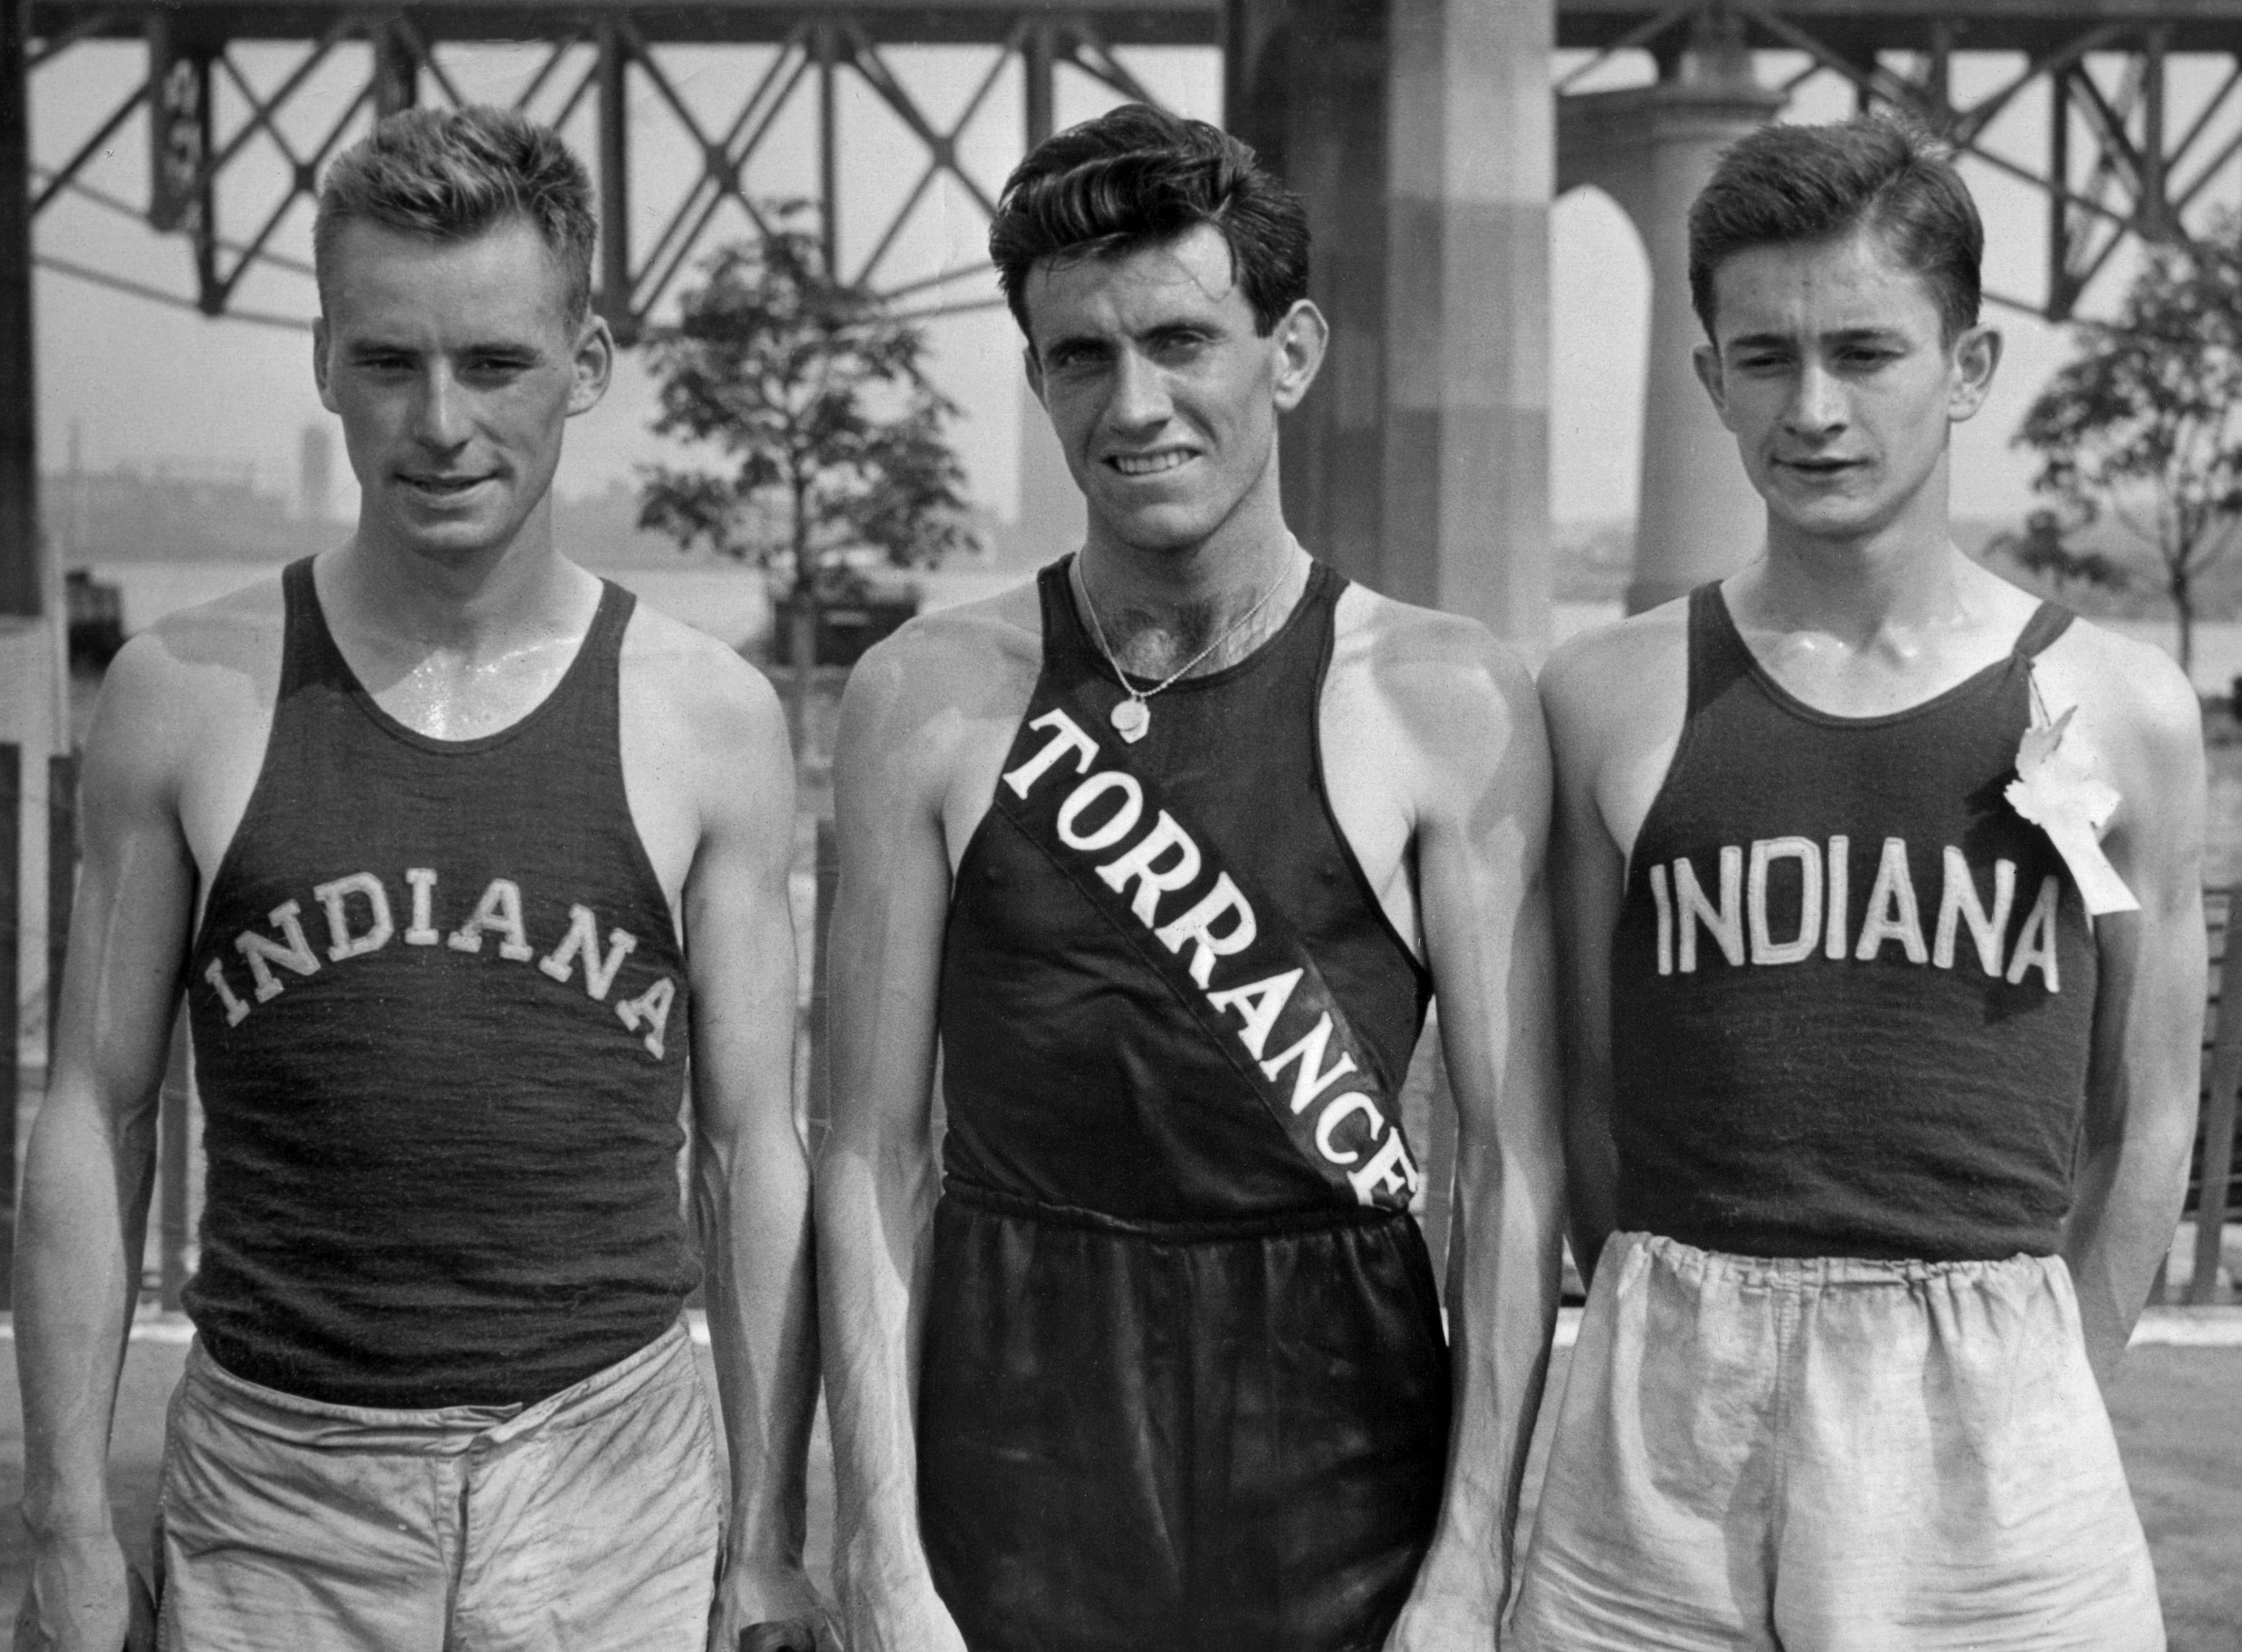 Don Lash of Indiana, left, Louis Zamperini of Los Angeles, center, and Thomas Deckard of Indiana, at the Olympic tryouts in New York in 1936. Zamperini, a U.S. Olympic distance runner and World War II veteran who survived 47 days on a raft in the Pacific after his bomber crashed, then endured two years in Japanese prison camps, died Wednesday, July 2, 2014. He was 97.